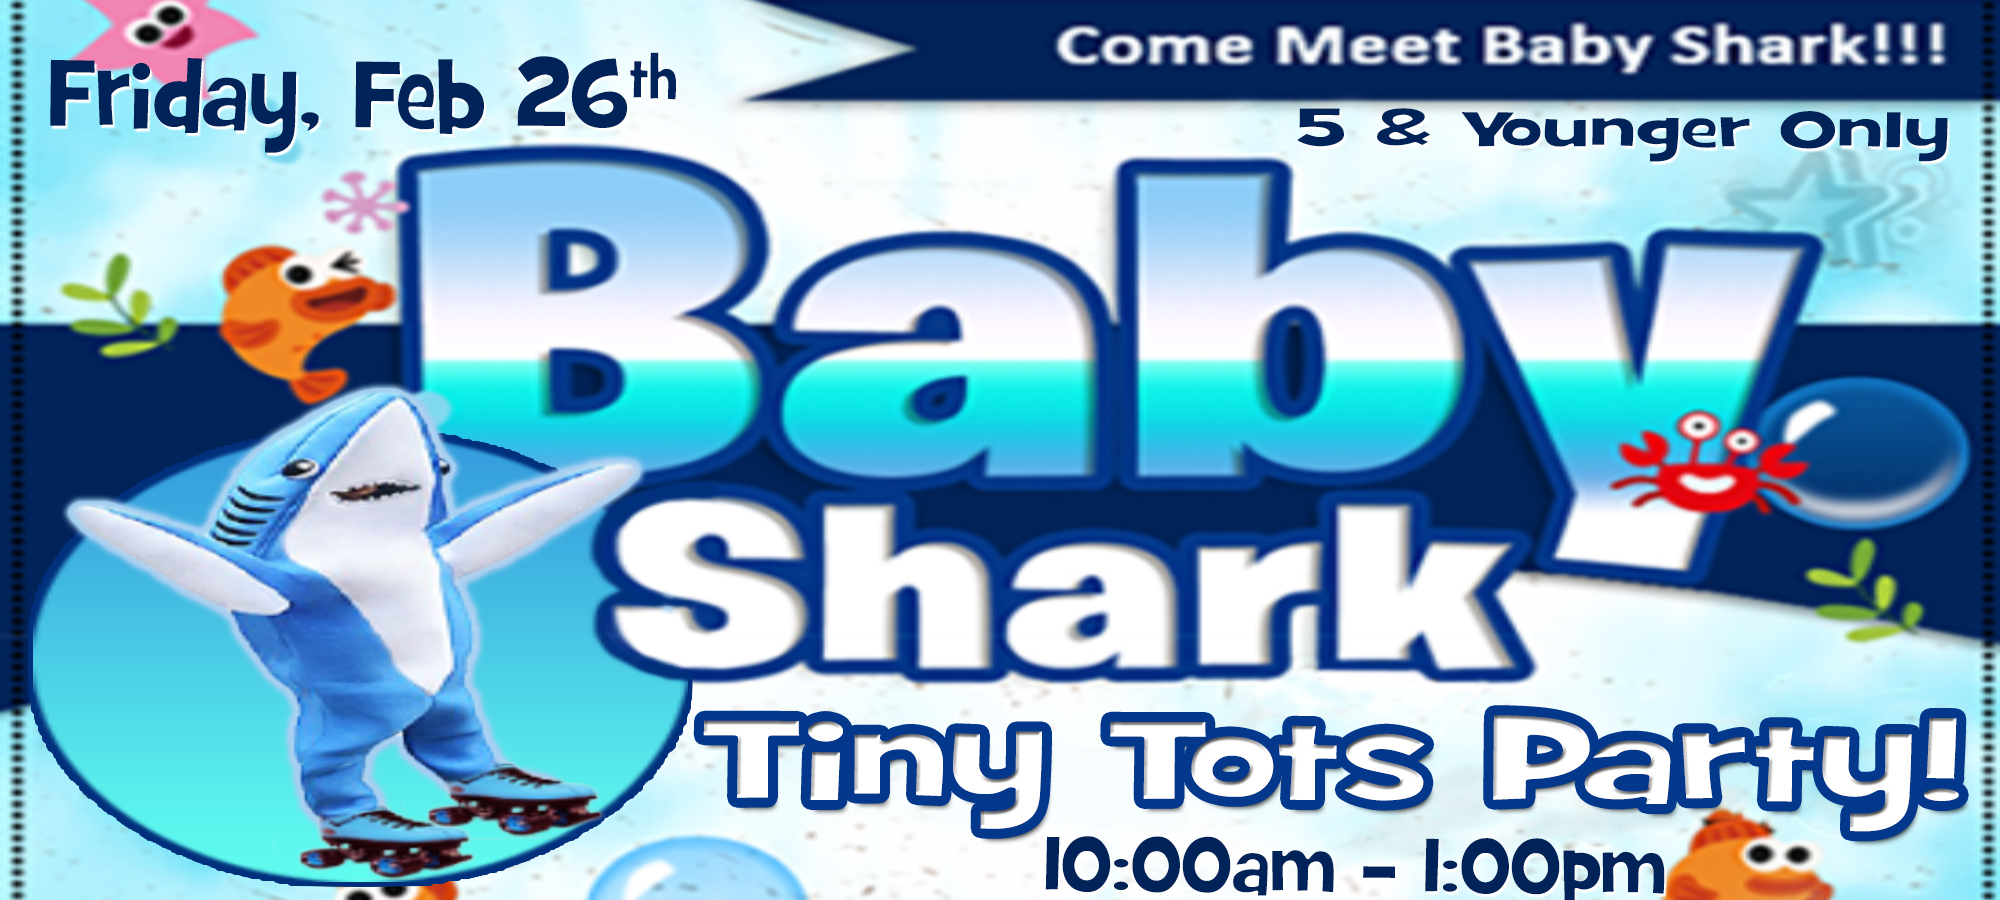 Tiny-Tots-Baby-Shark-2021